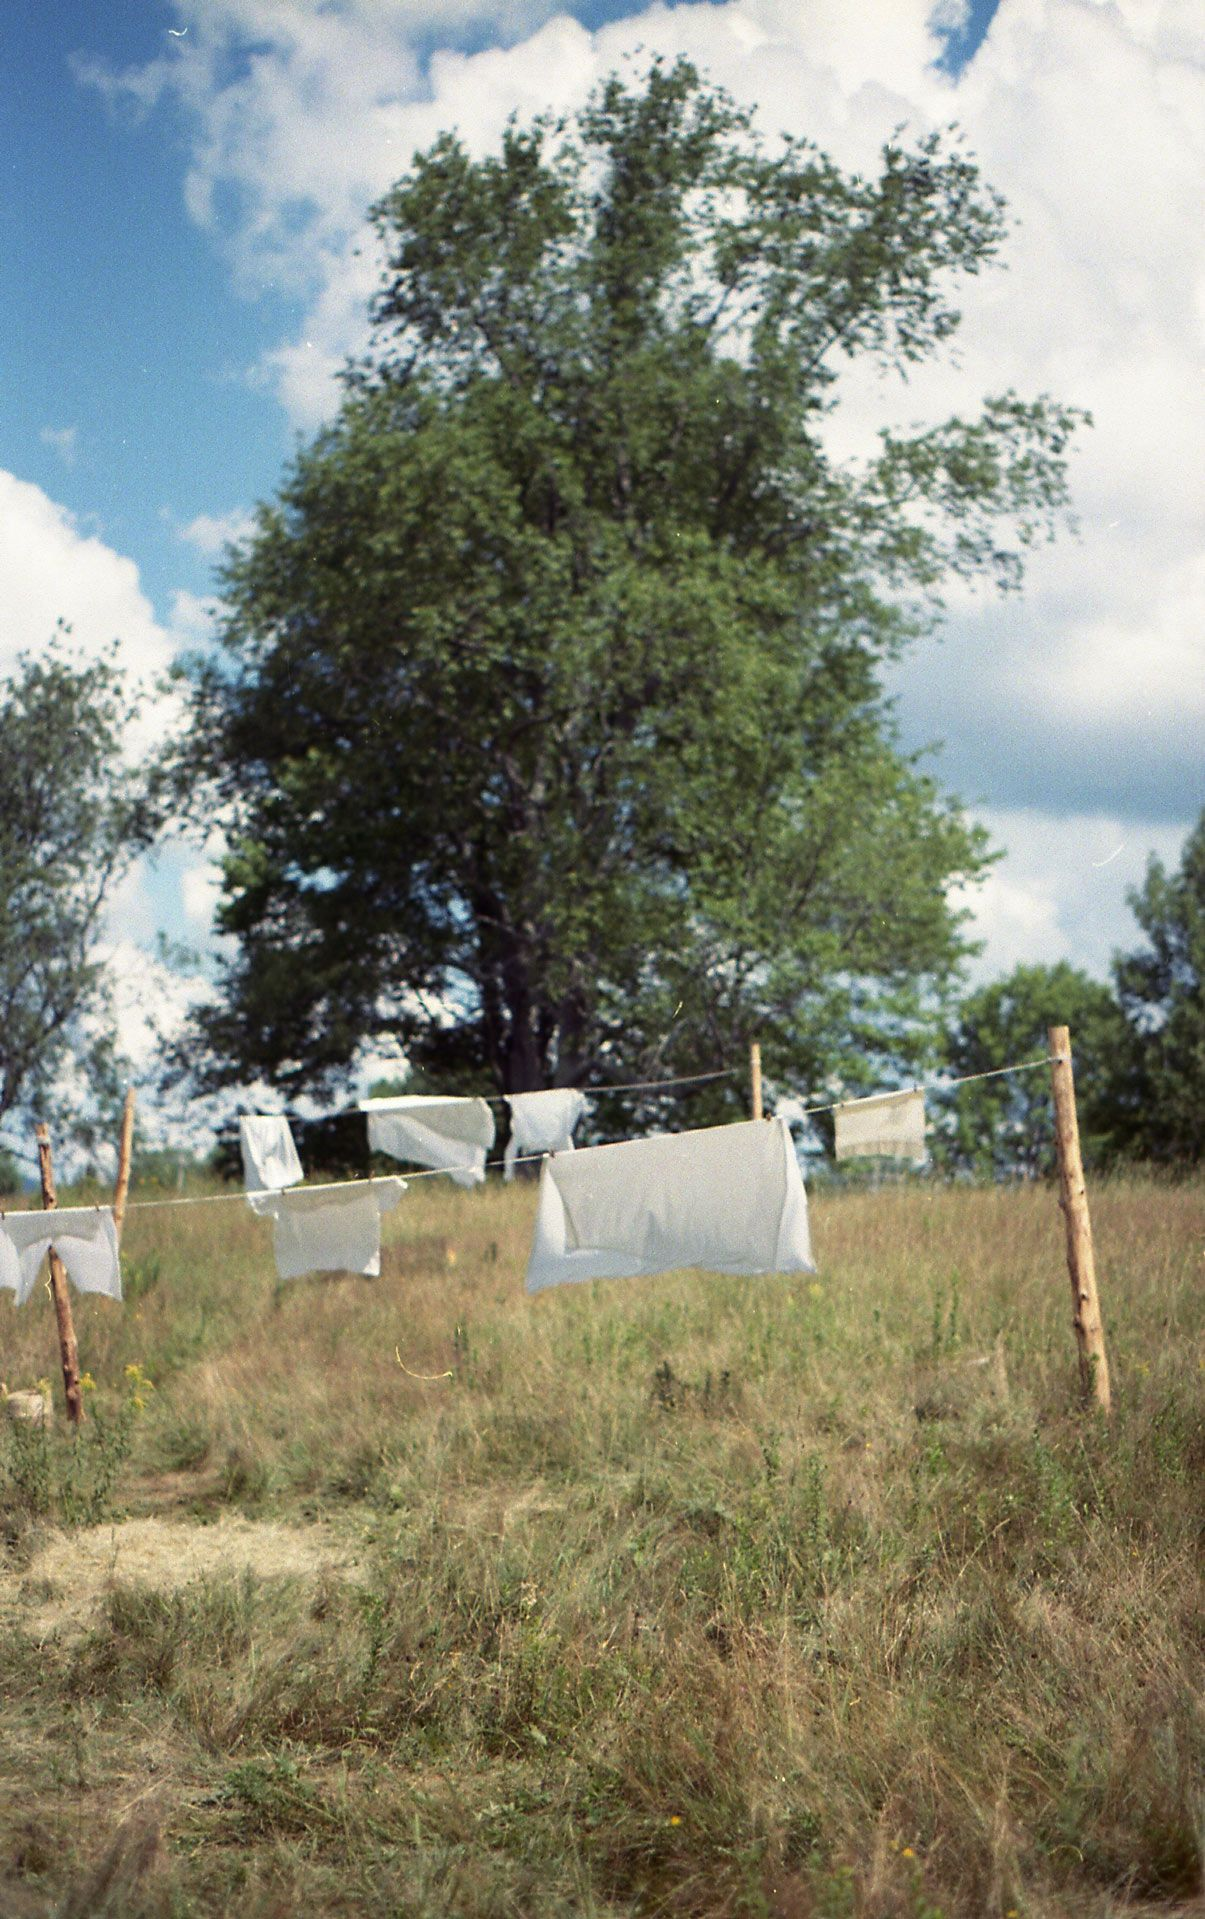 white clothes on clothesline swinging in the wind for singer KNLO video clip Plafond